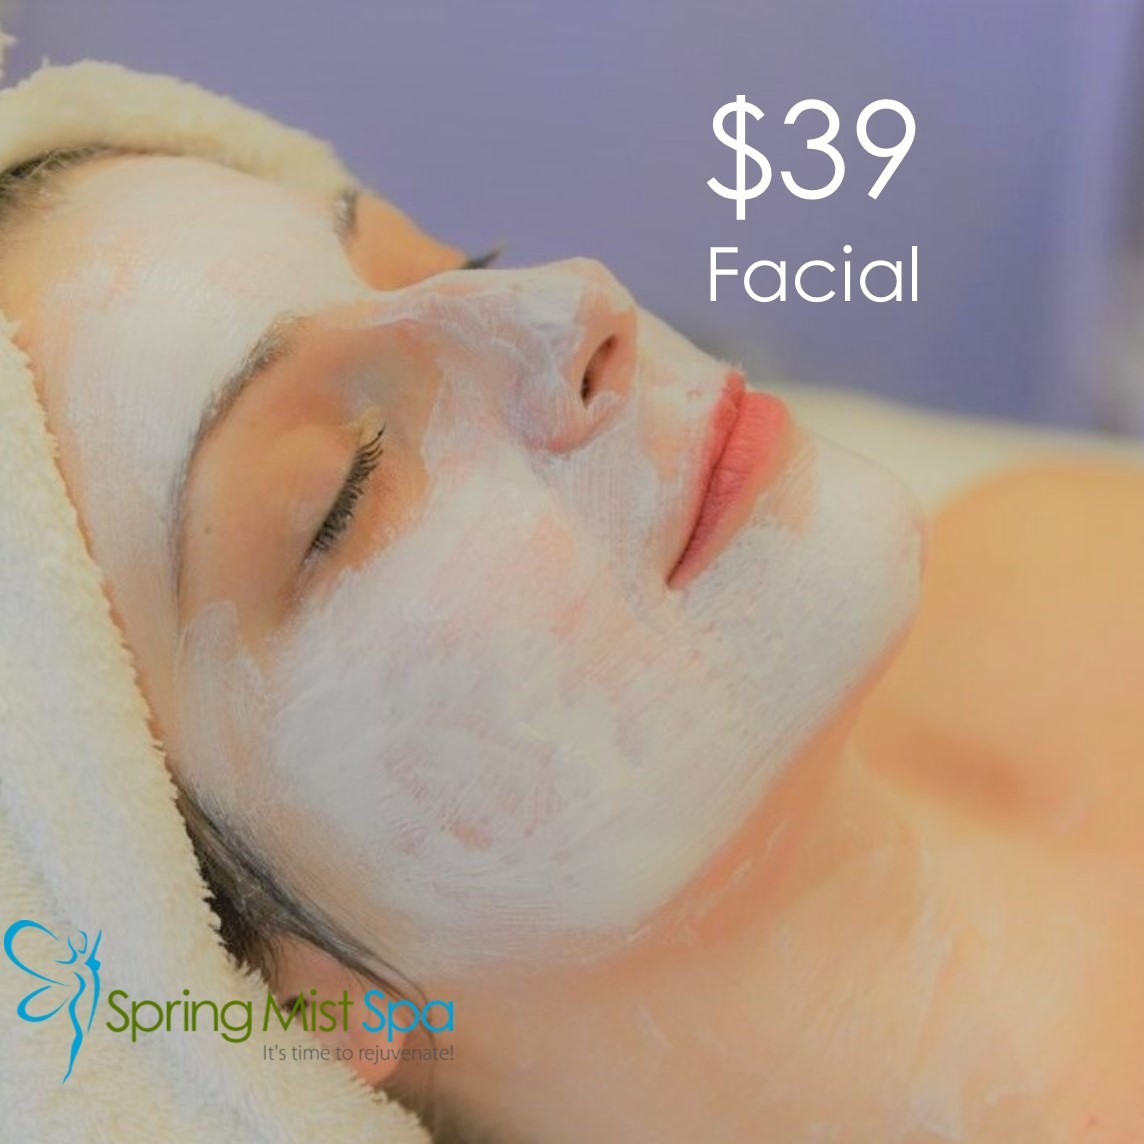 Dr. Spiller Facial Treatment at Spring Mist Spa only $39